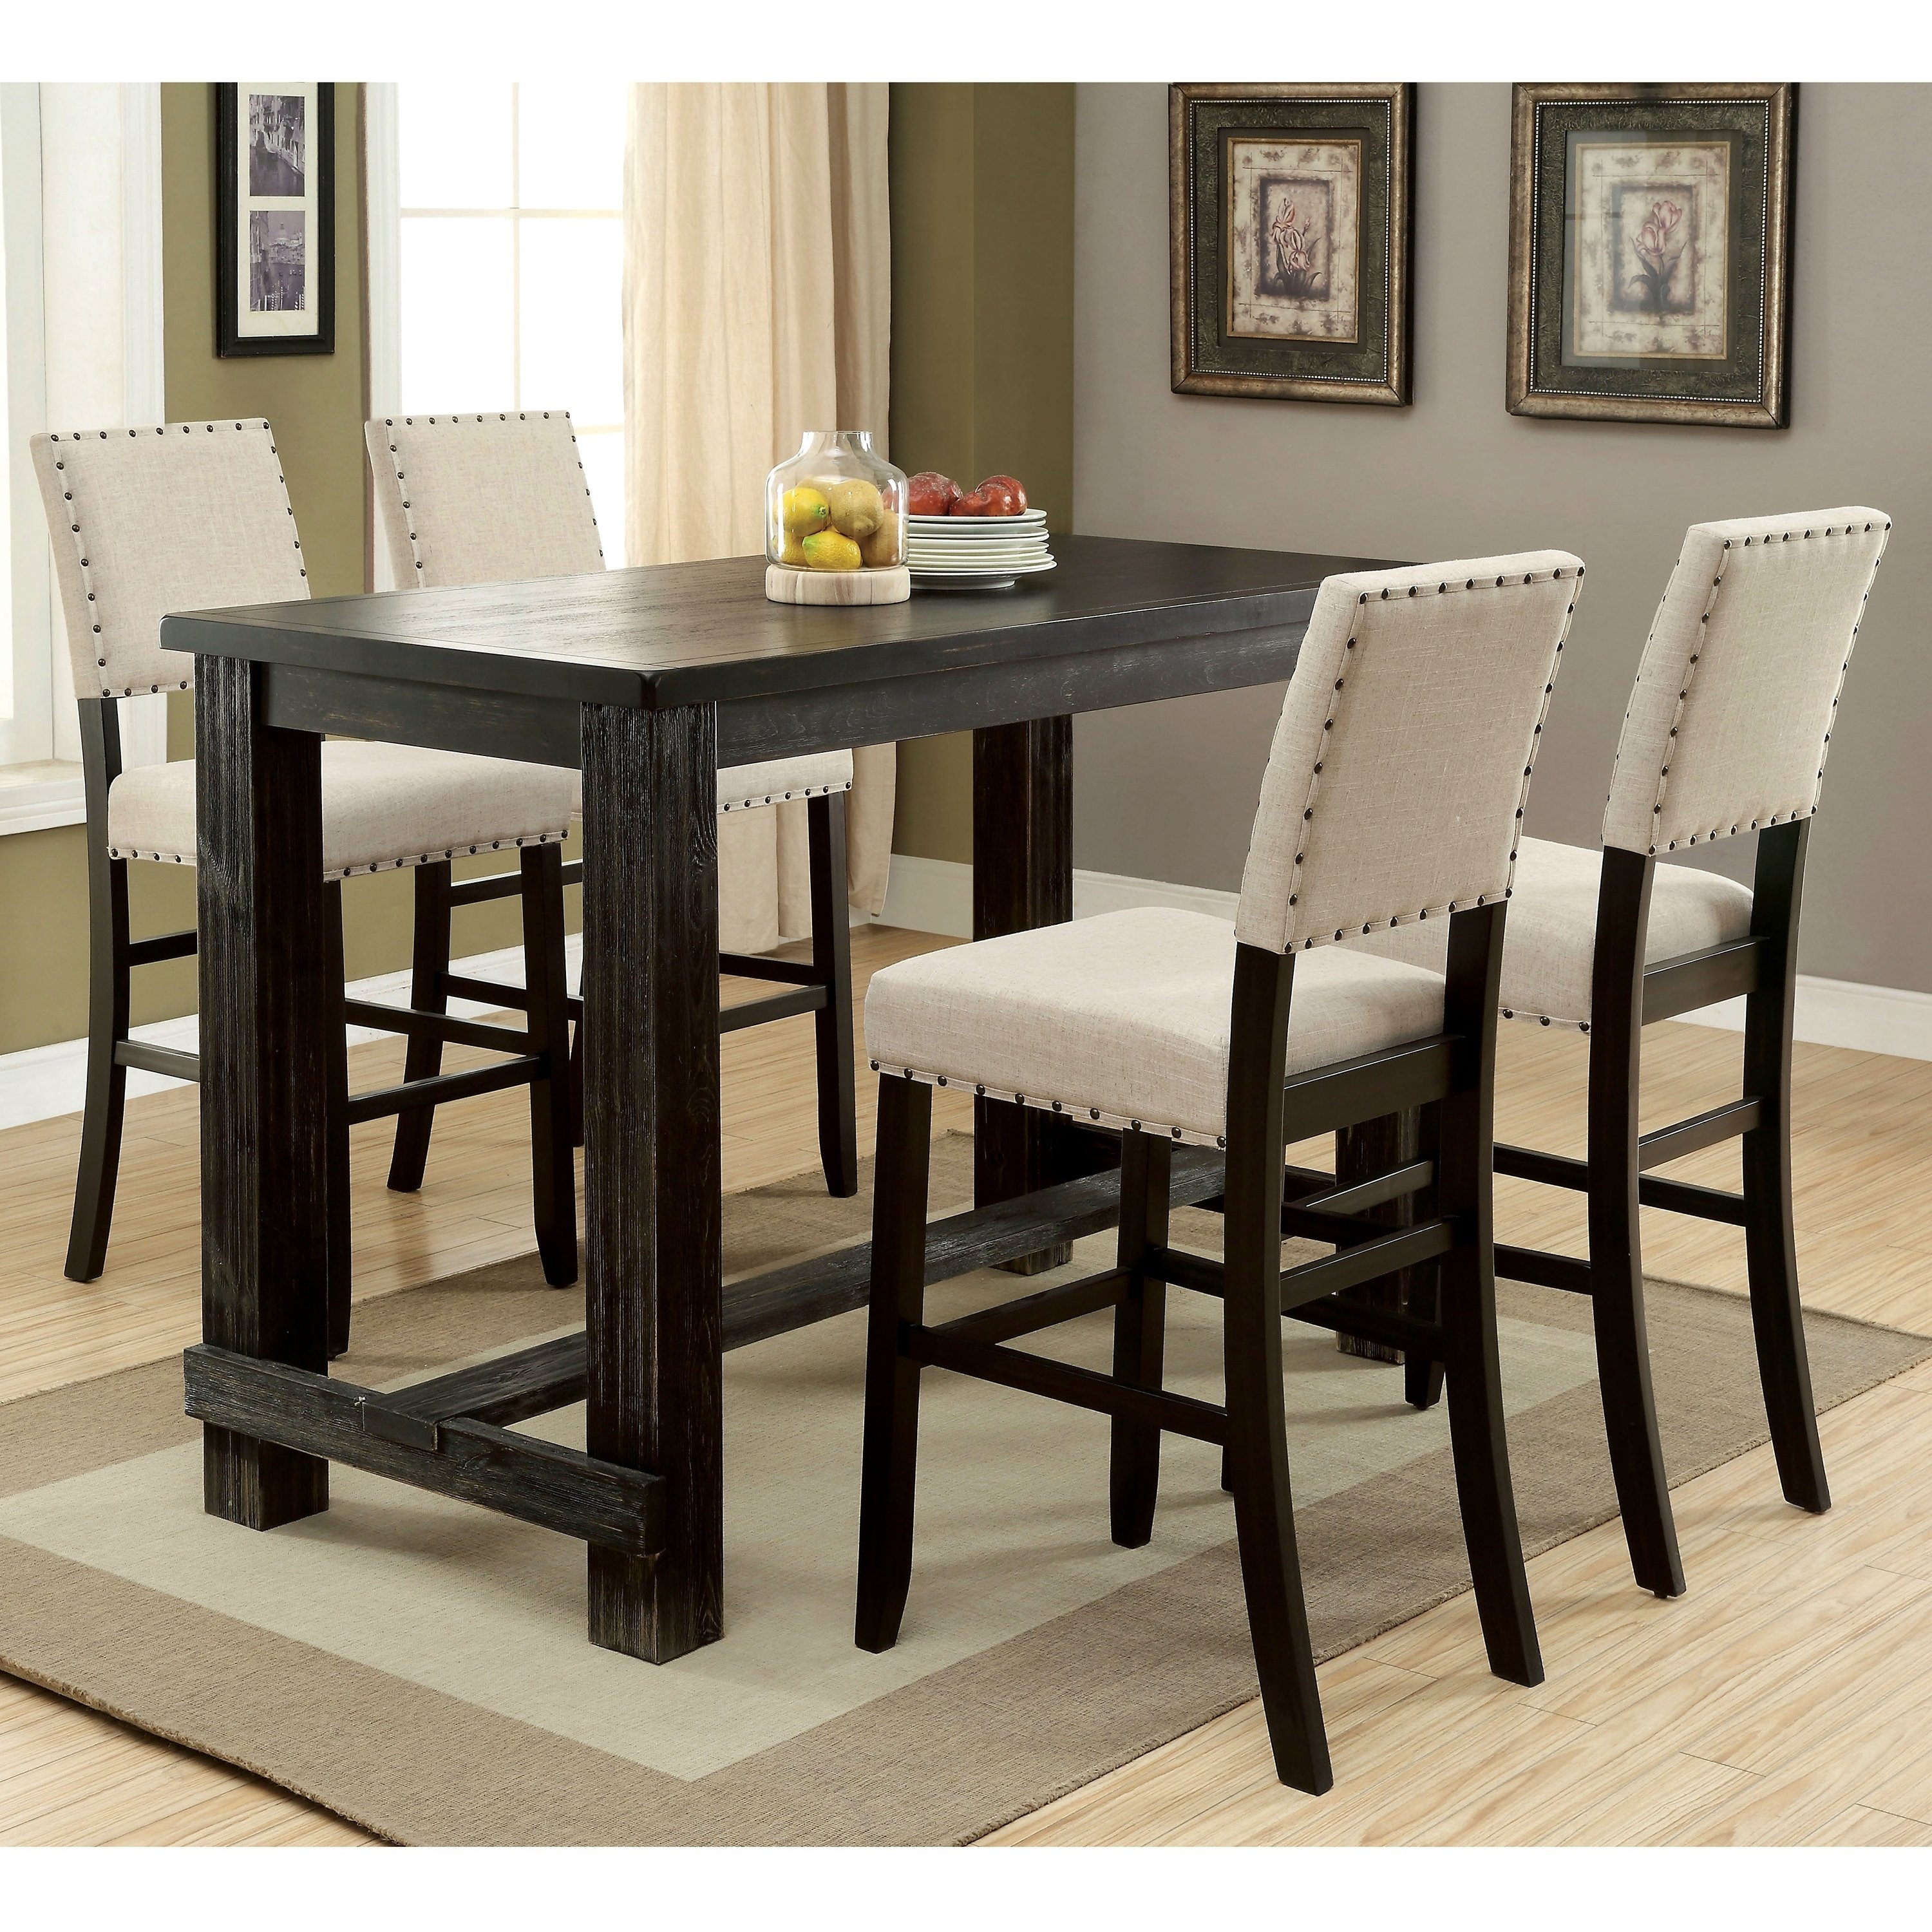 Richland Transitional Antique Black 5 Piece Bar Table Set By Foa